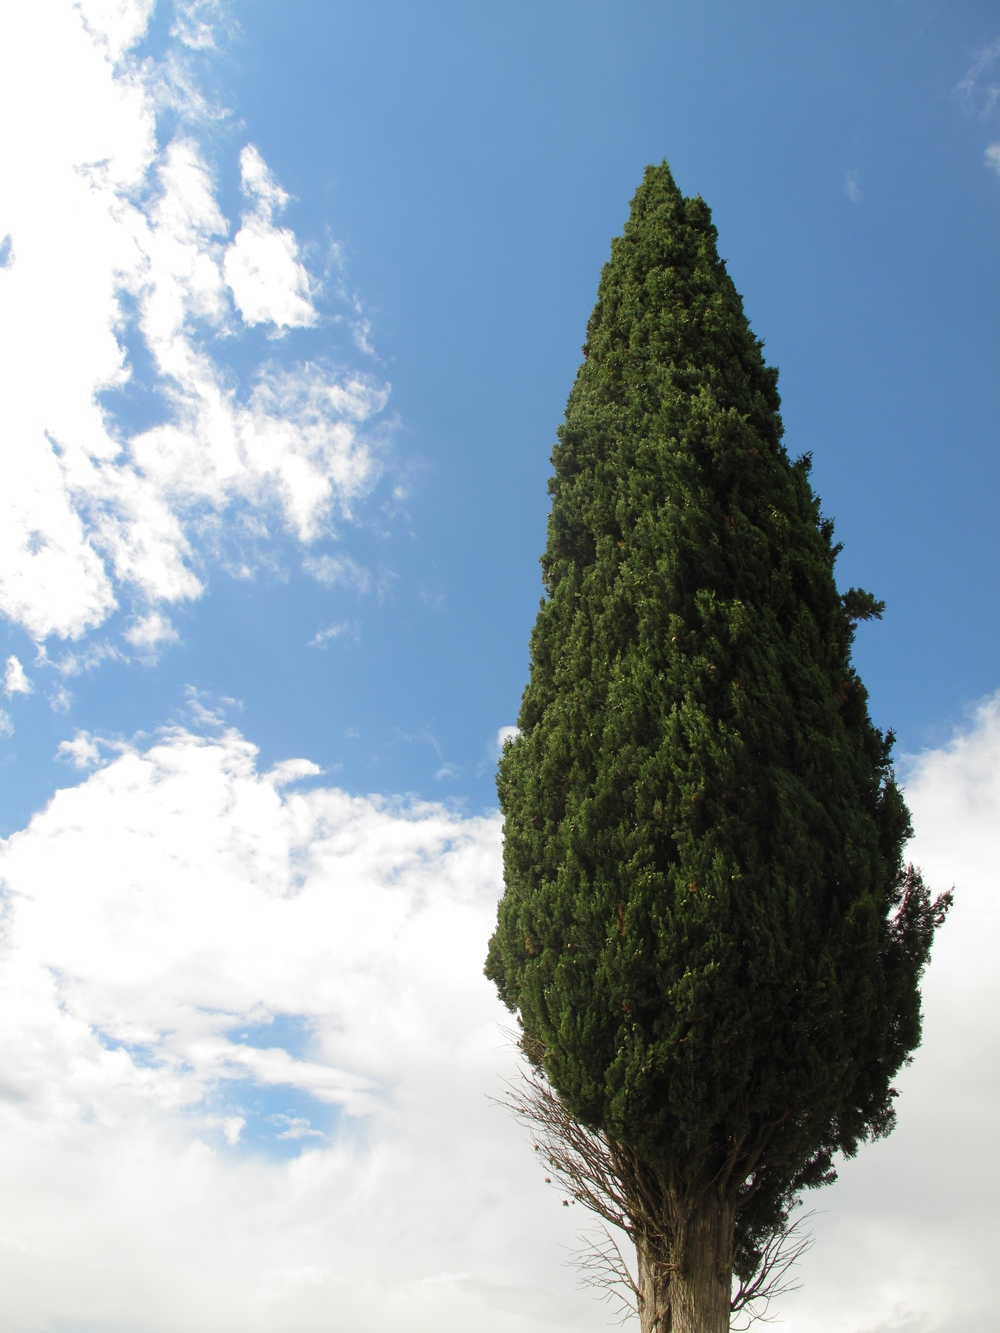 Tall cypress tree against the blue sky in Tuscany